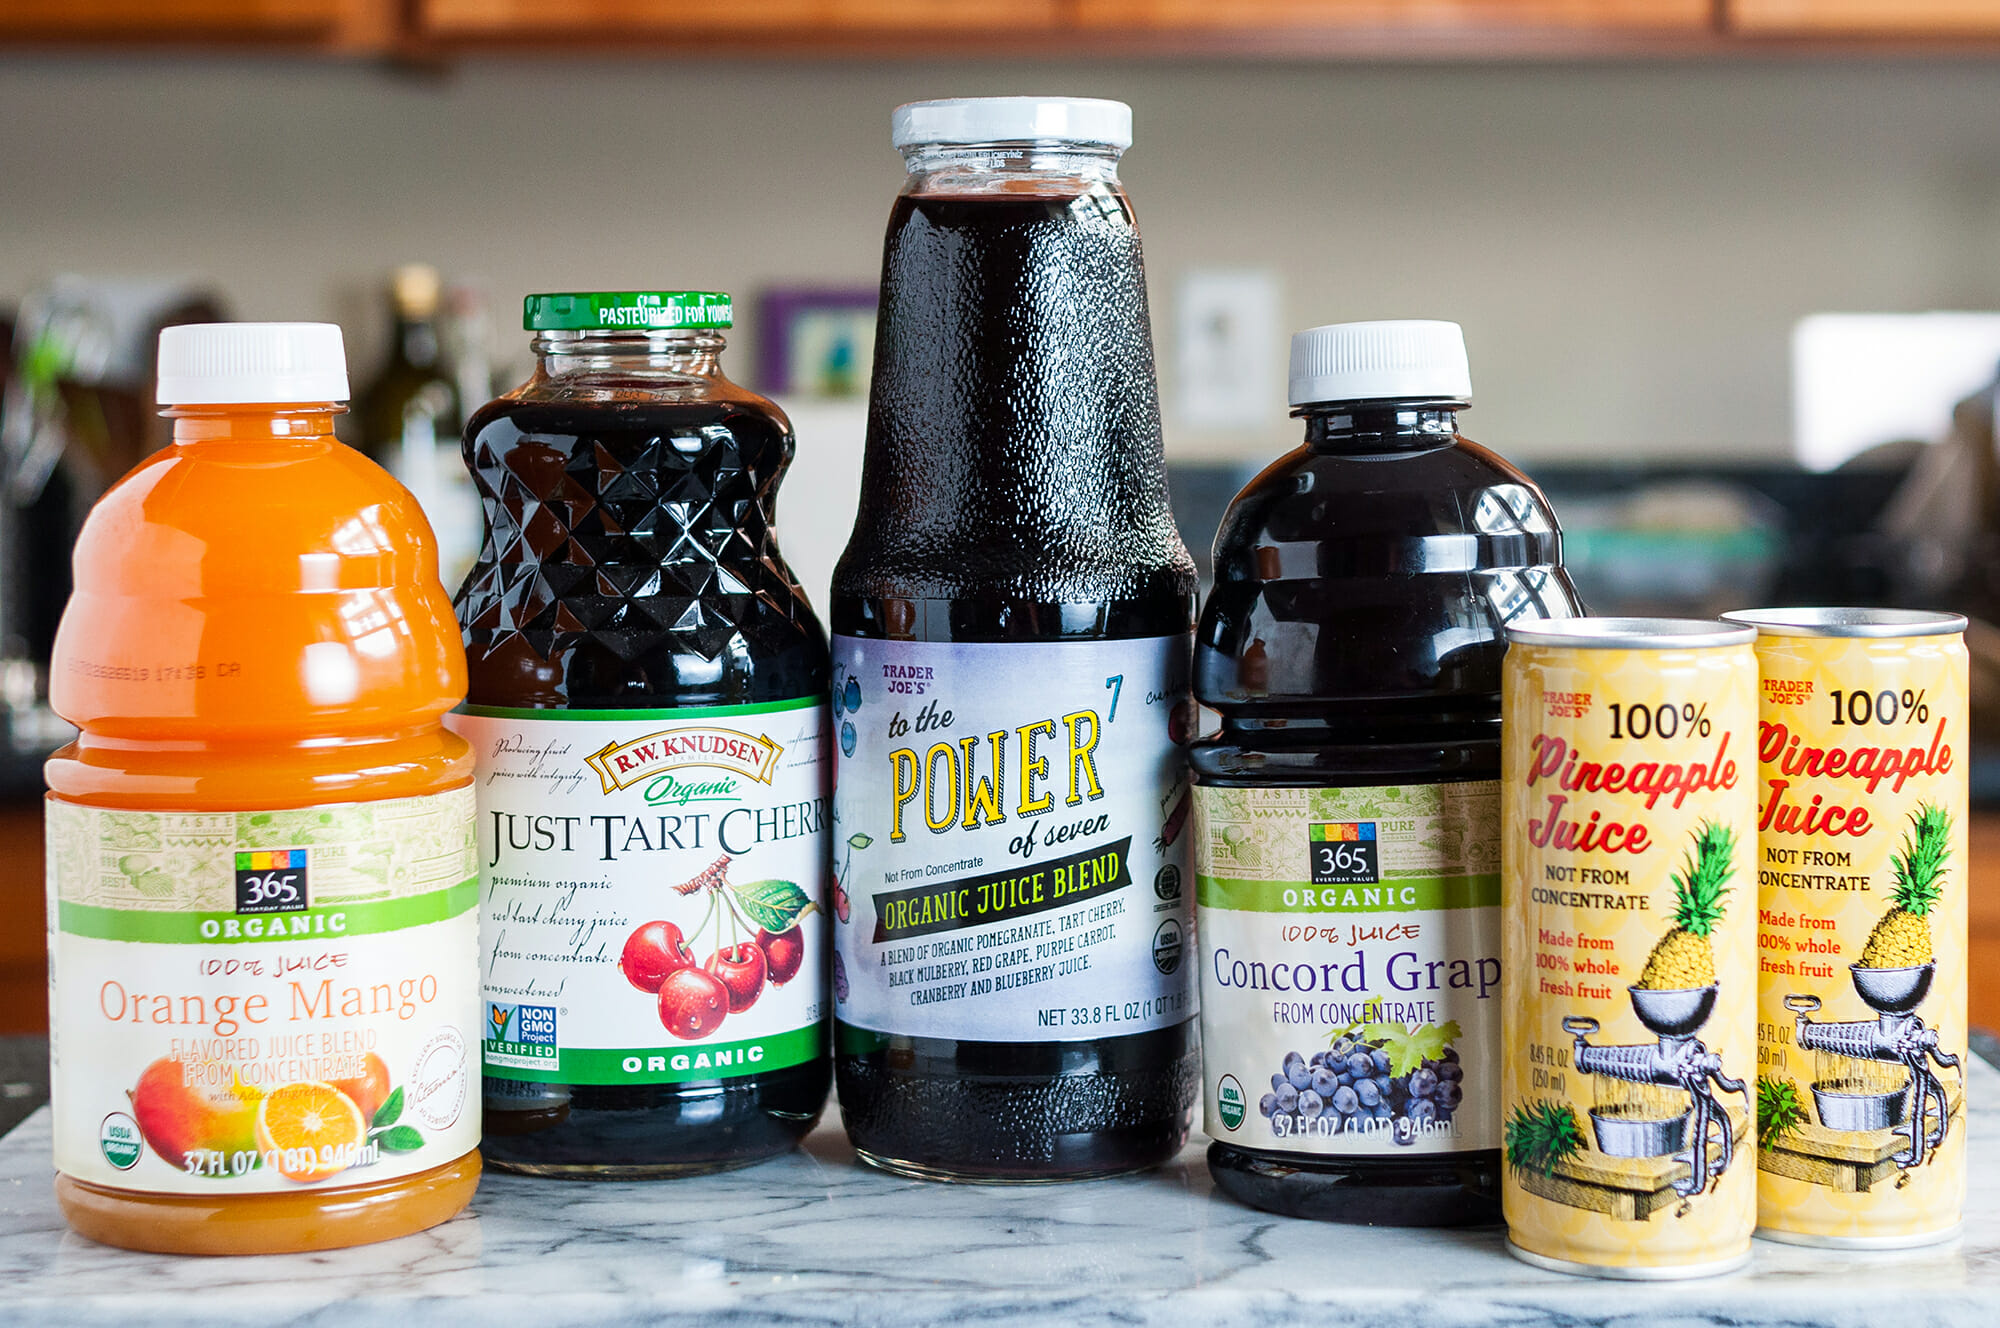 Several bottles of store-bought juice on a counter